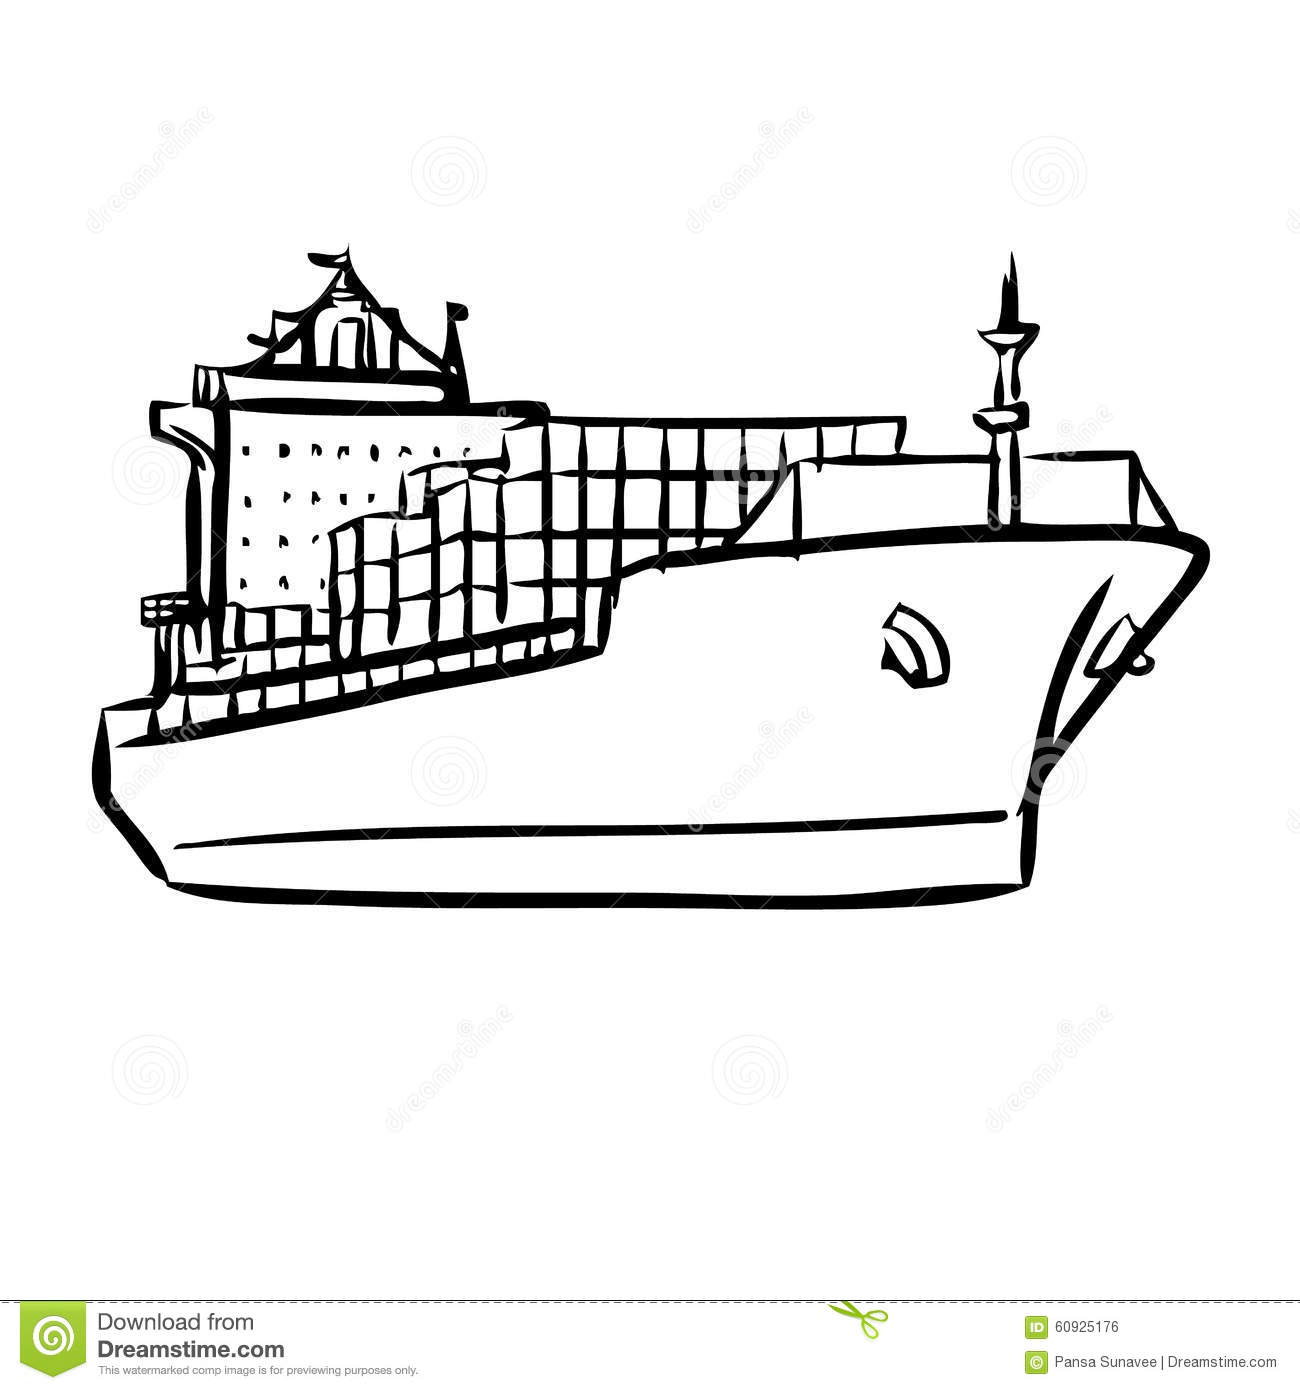 Cargo Ship Outline Drawing | www.pixshark.com - Images ...